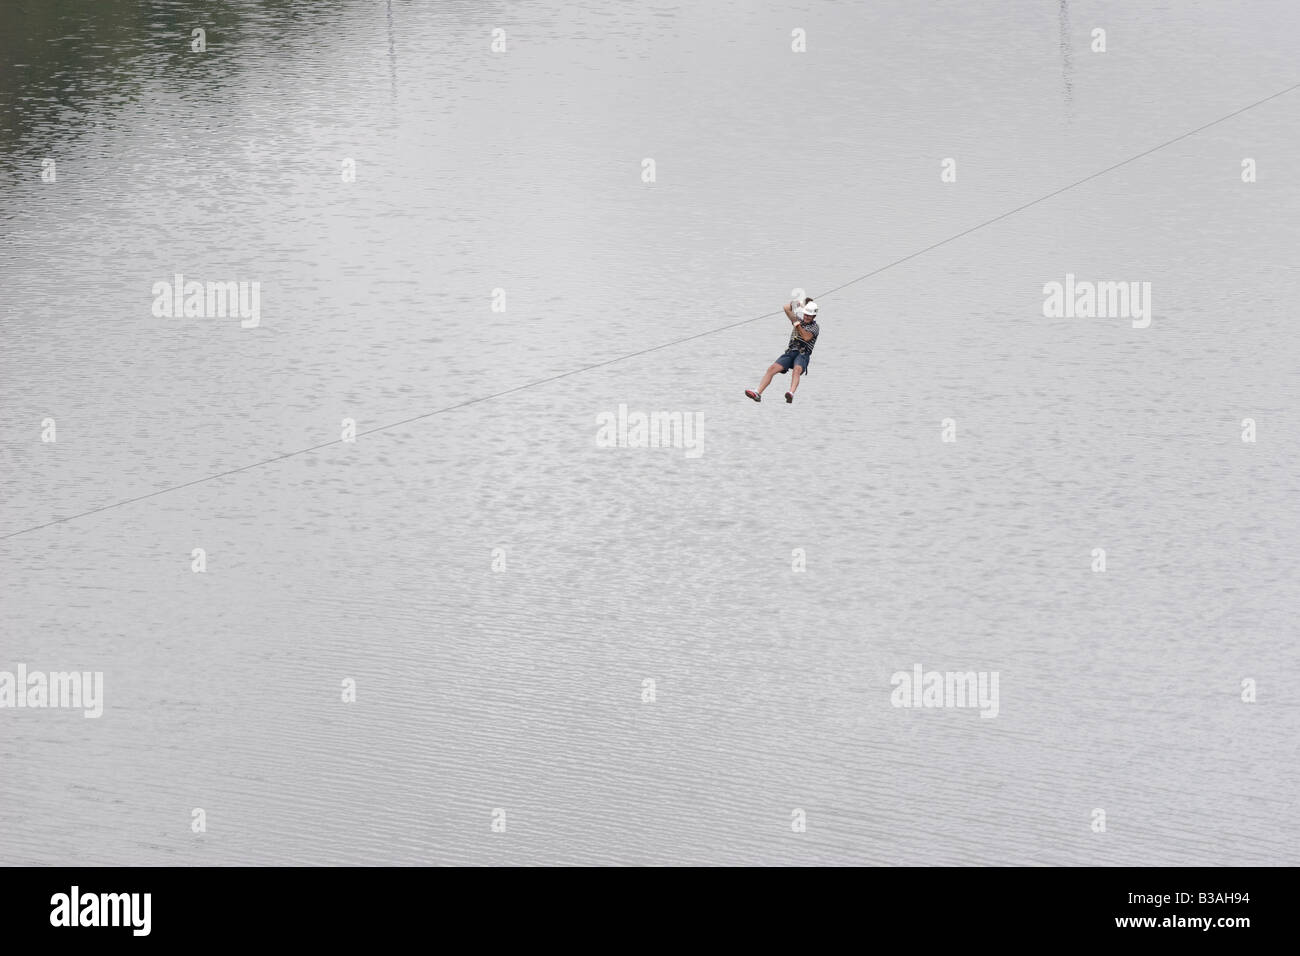 Tourist sliding down in a canopy cable across the Dique Los Molinos dam Cordoba Argentina - Stock Image